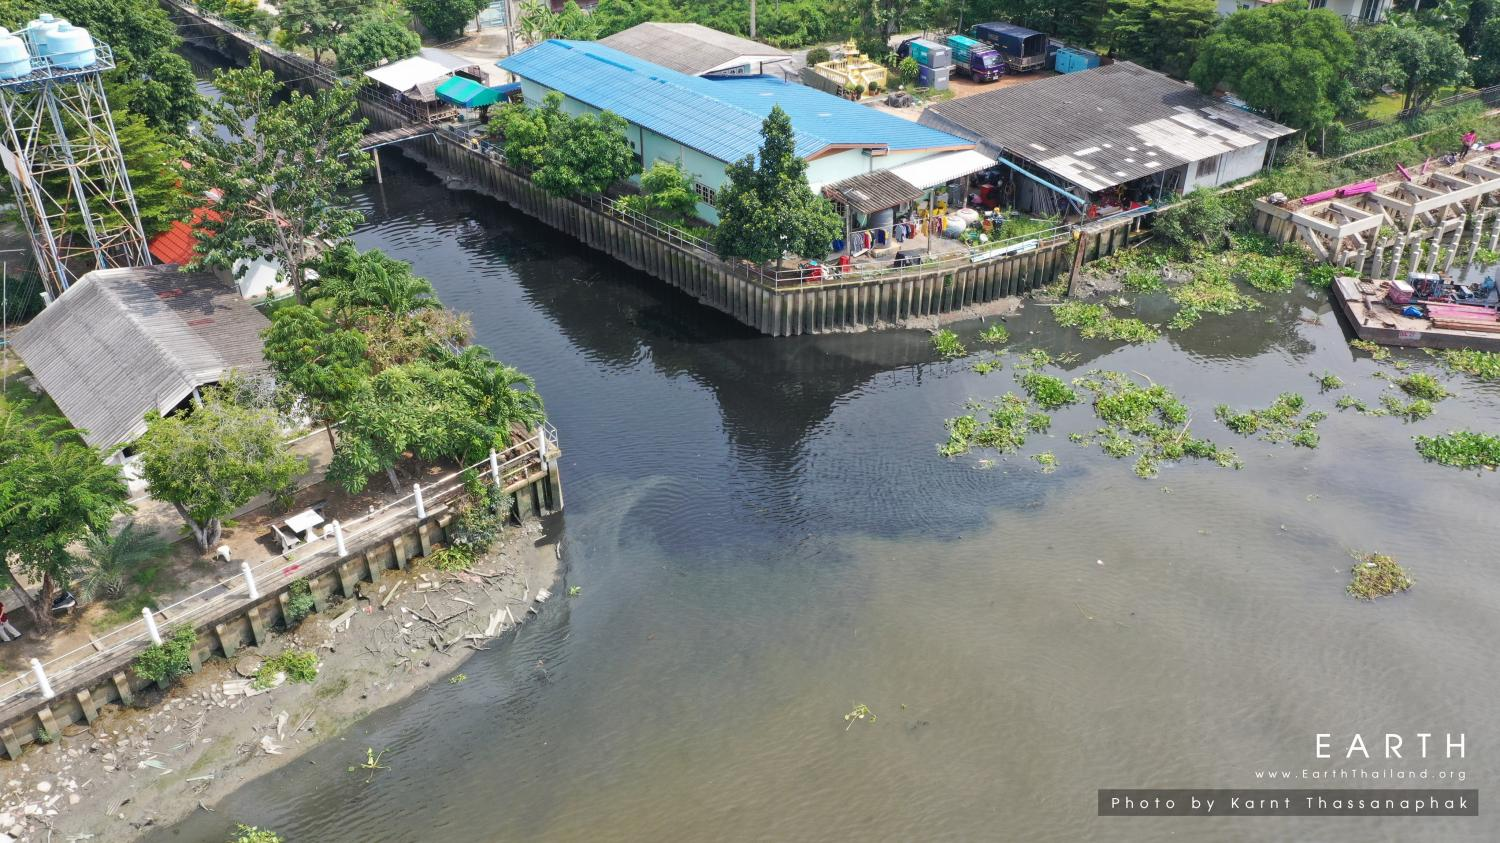 FATAL SHORE: Samut Sakhon province, a fishery and industrial centre not far from Bangkok, has been known for deadly pollution that encompasses coastal erosion, wastewater, garbage and air pollution.